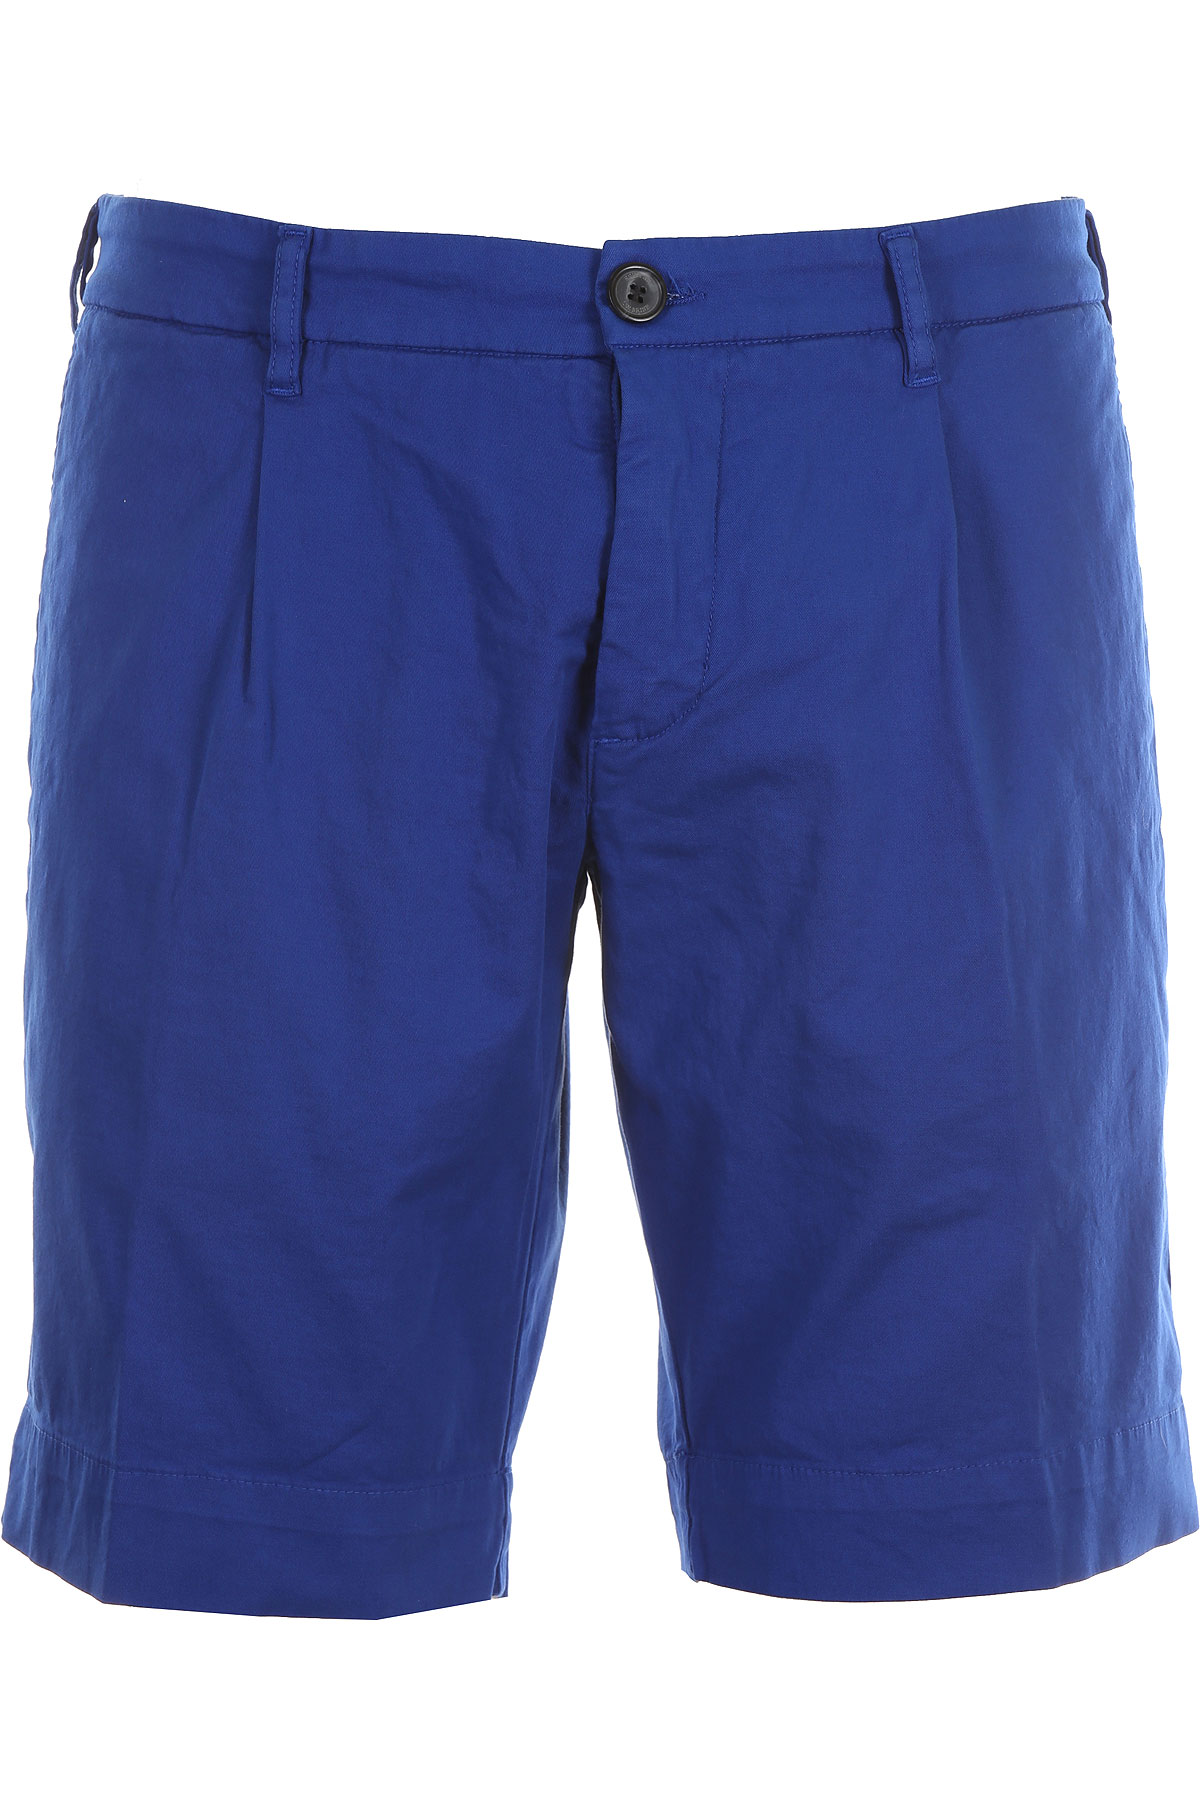 J.W. Brine Shorts for Men On Sale, Bluette, Cotton, 2019, 30 32 34 38 40